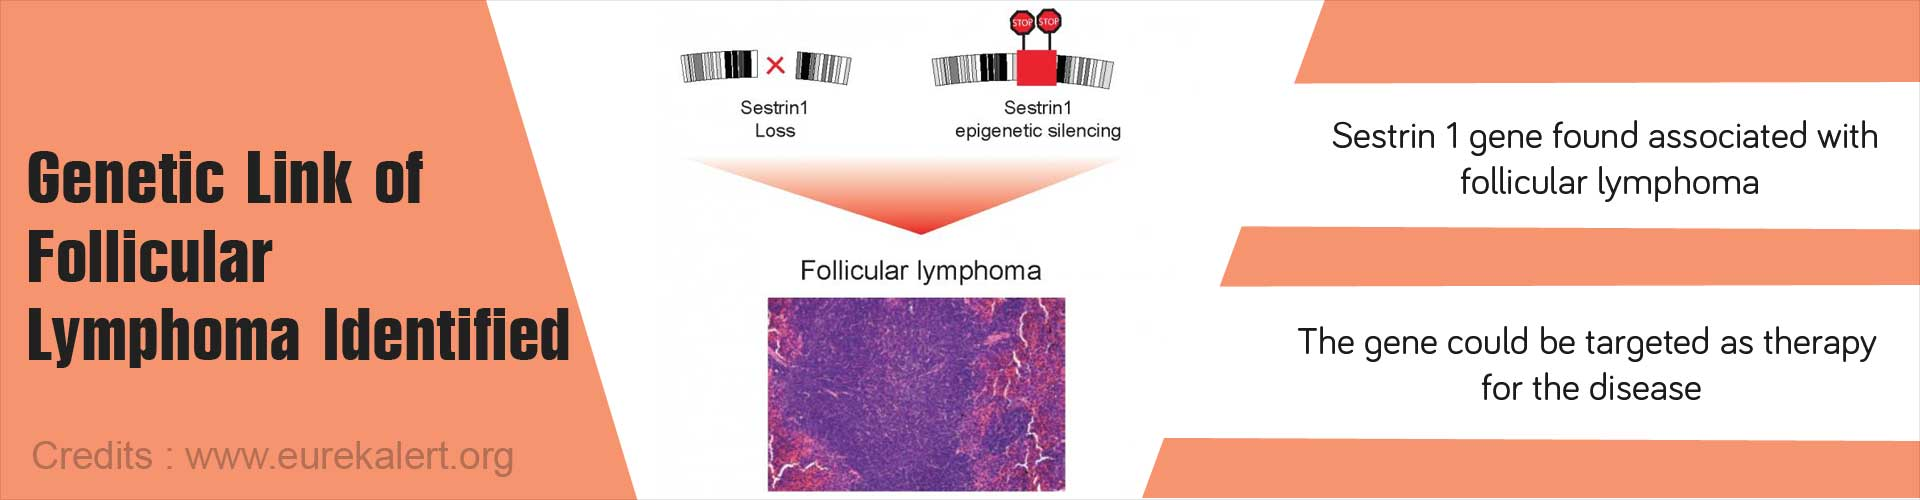 Genetic link of follicular lymphoma identified